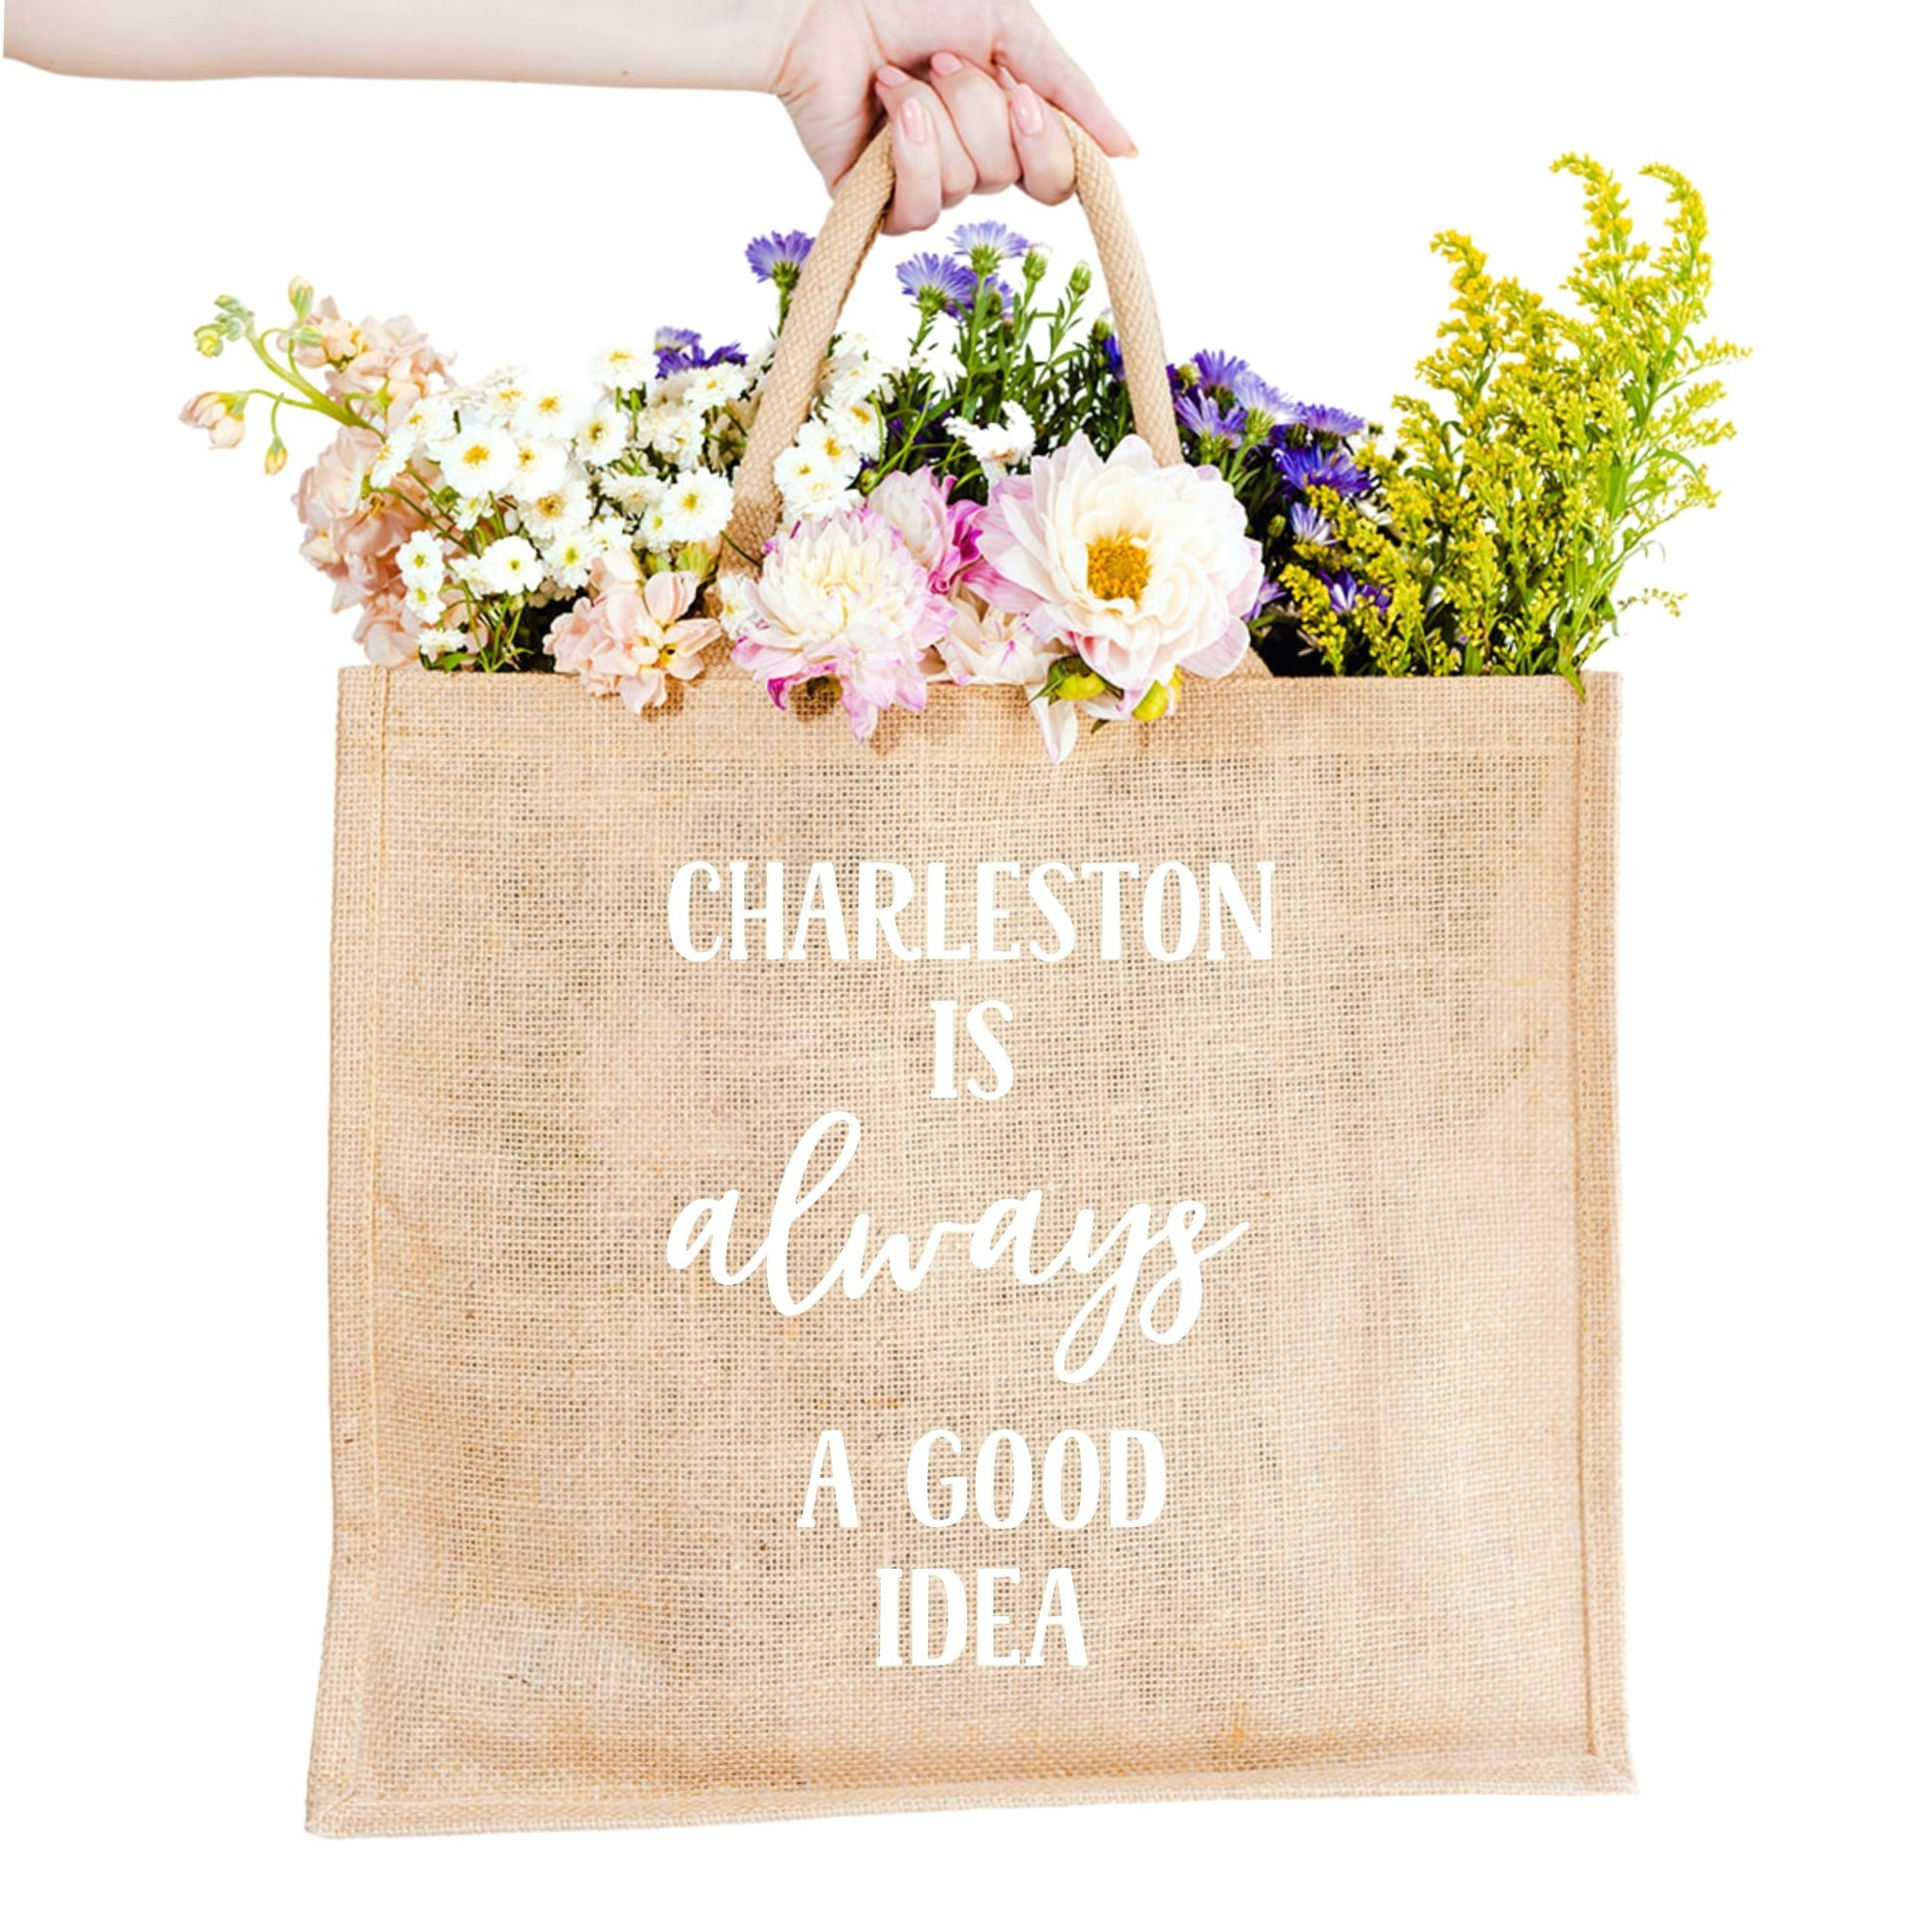 Charleston is Always A Good Idea Jute Carryall - Sprinkled With Pink #bachelorette #custom #gifts